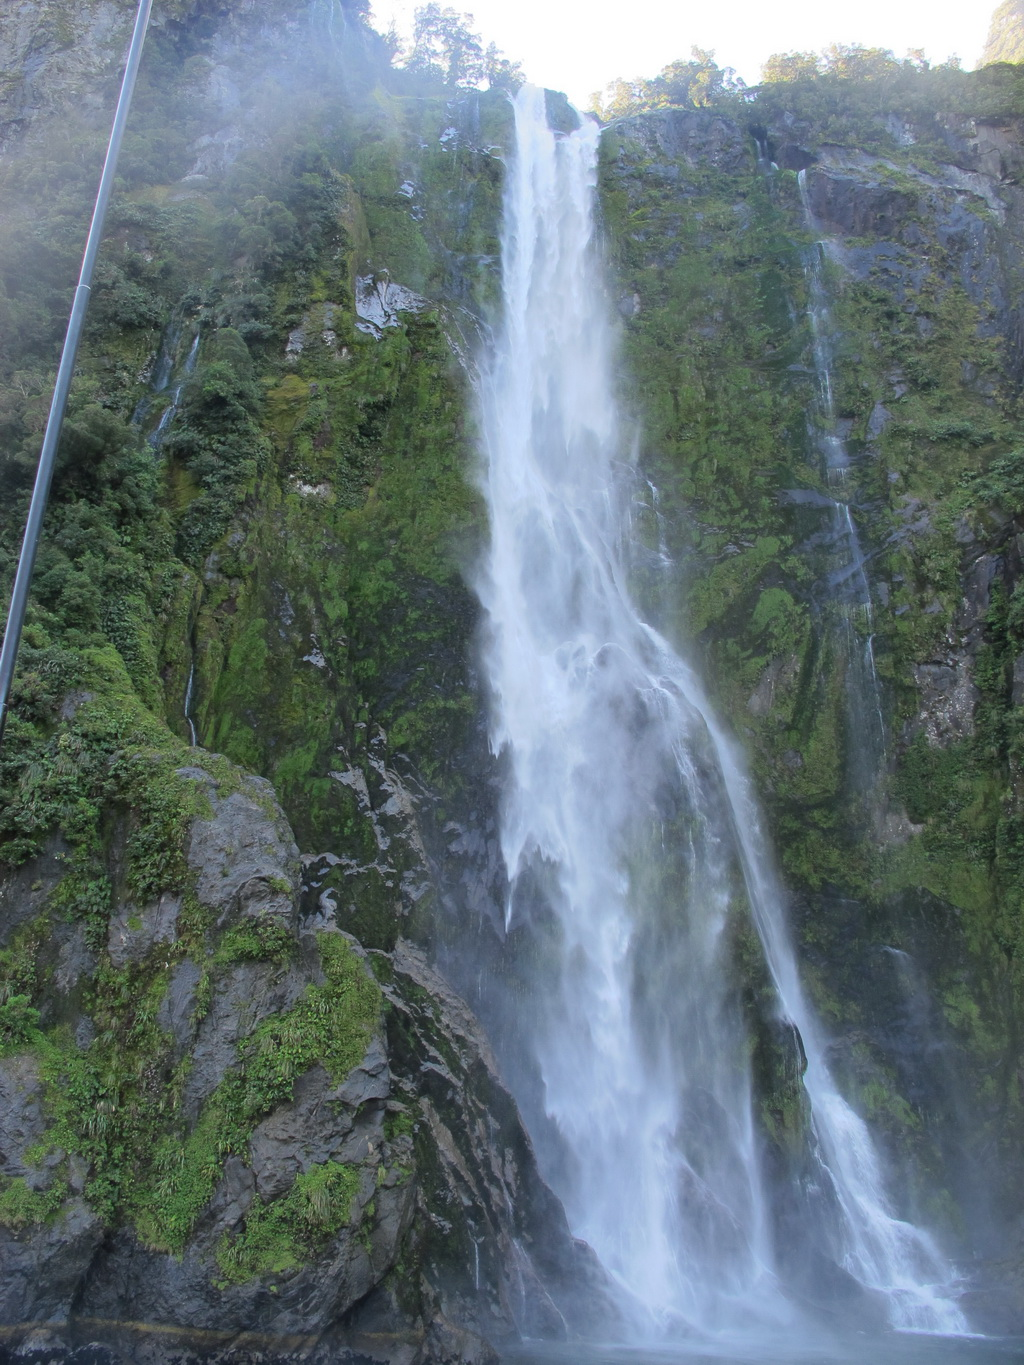 A waterfall at Milford Sound, NZ